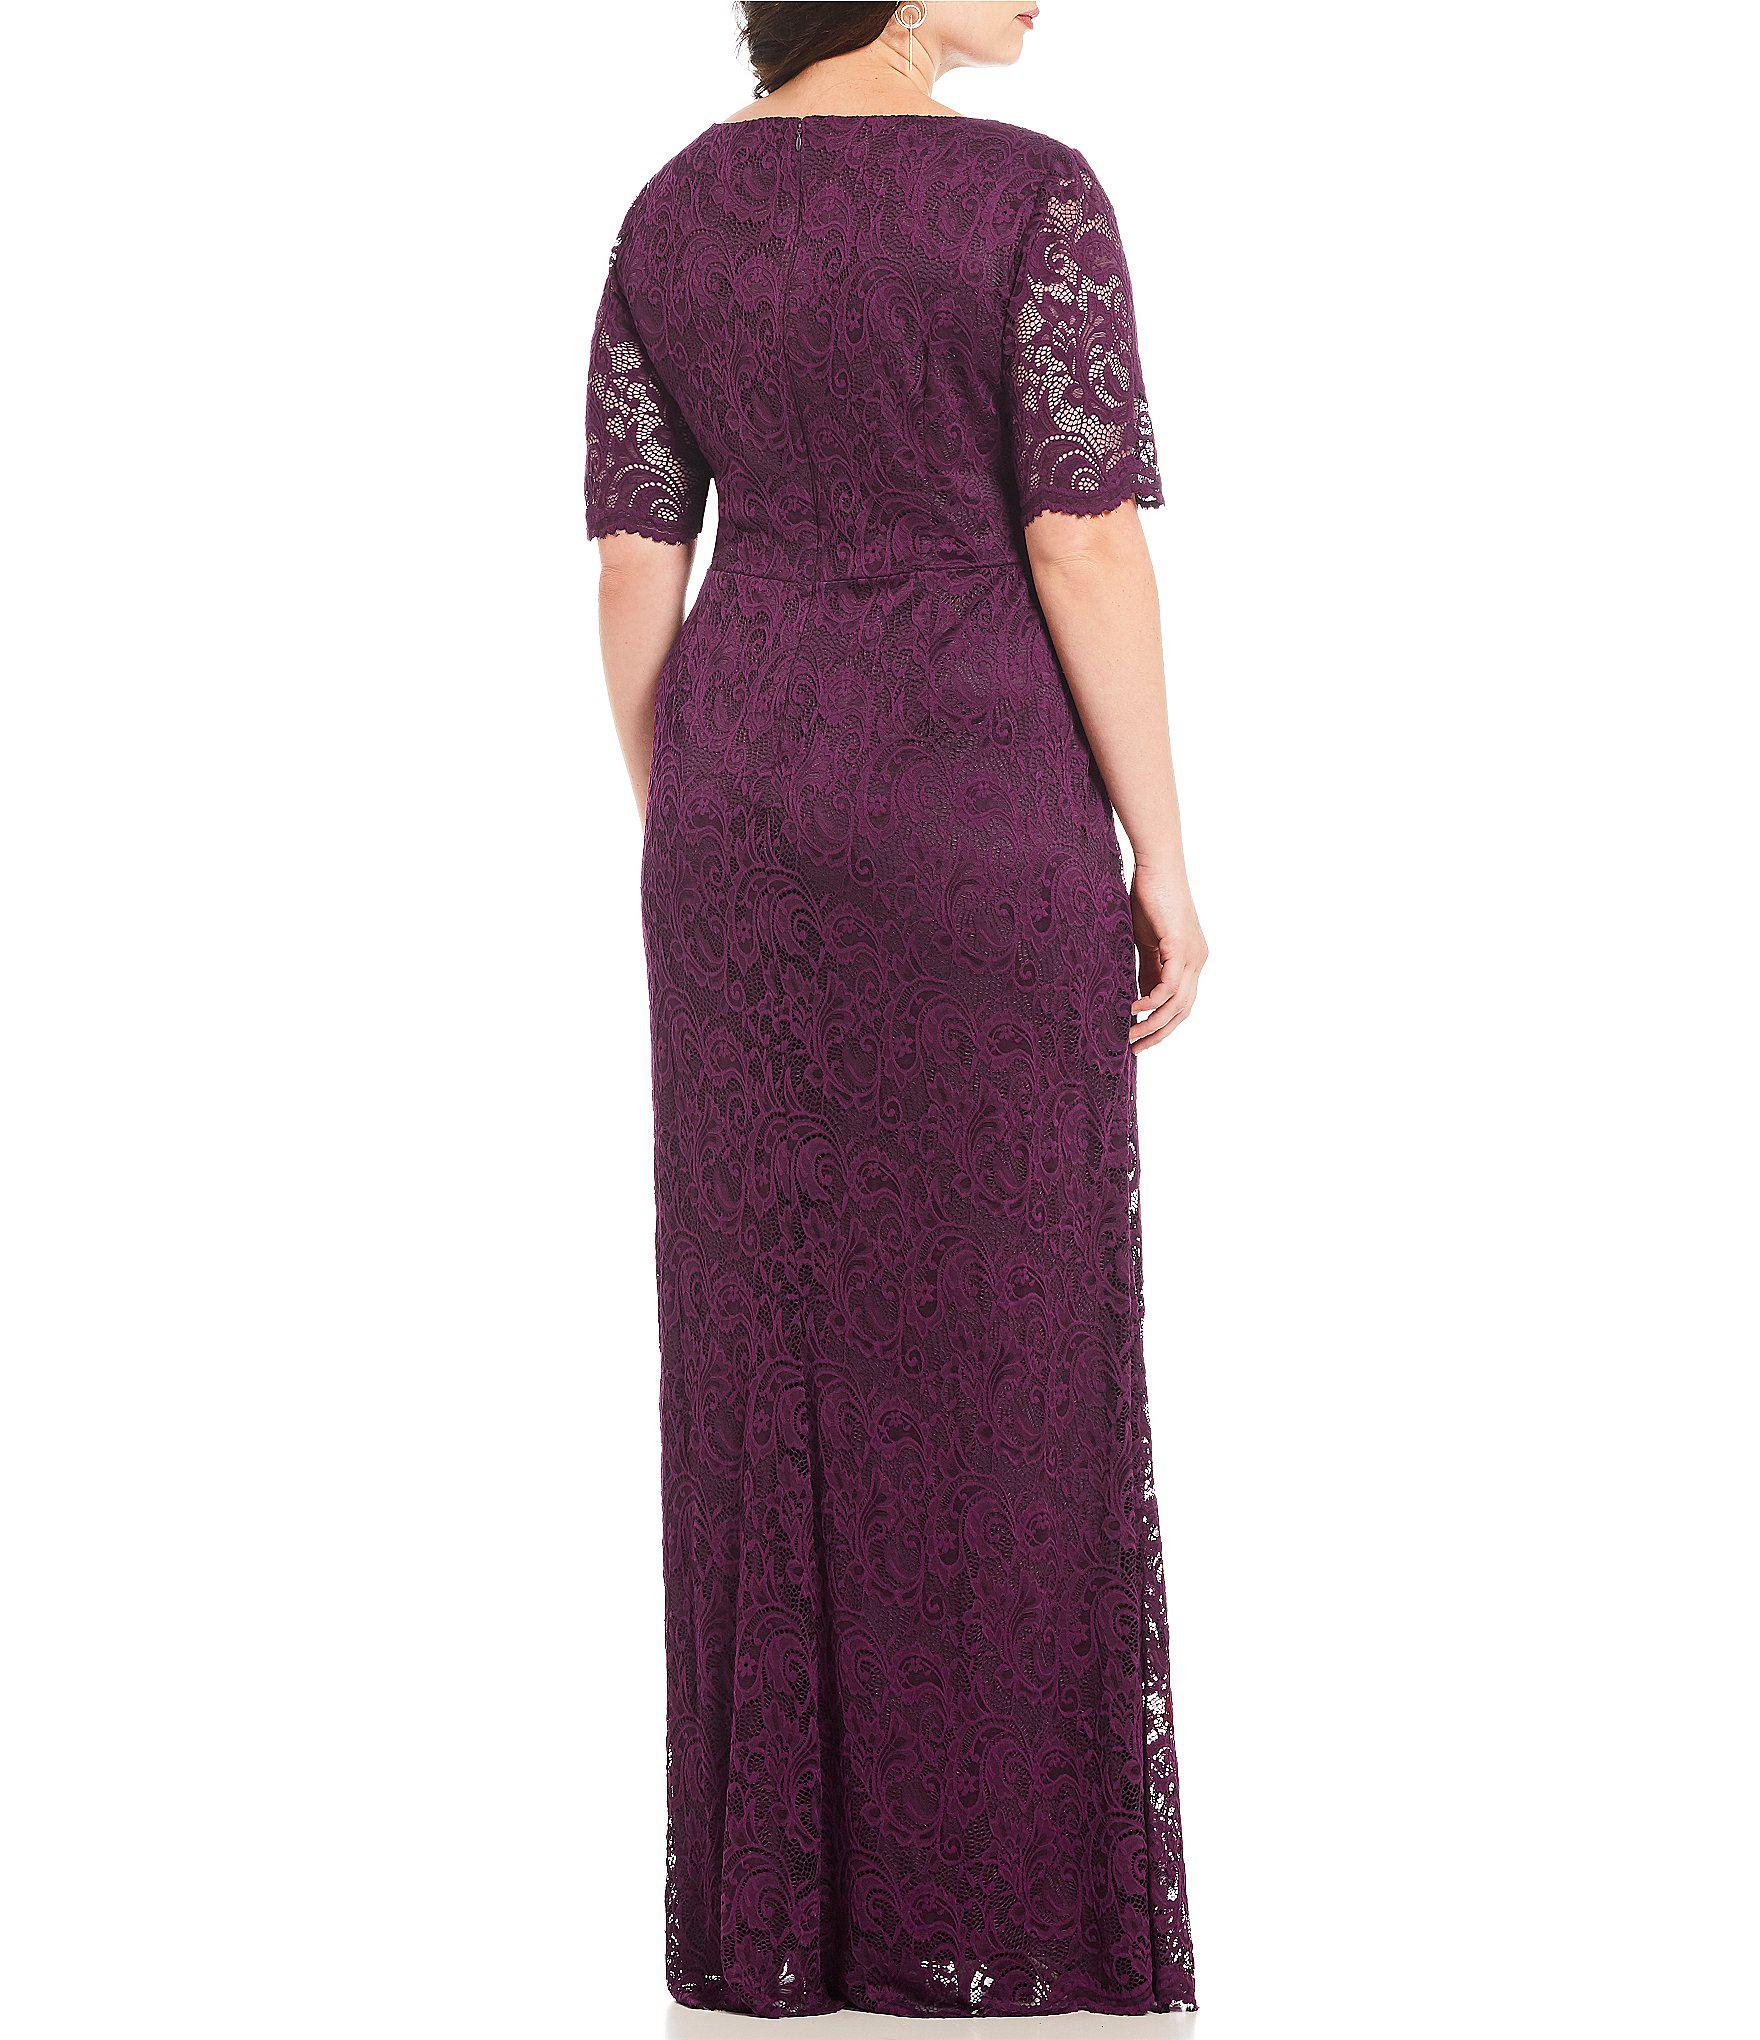 d5c69037cbd Gallery. Previously sold at  Dillard s · Women s Adrianna Papell Lace Dress  ...